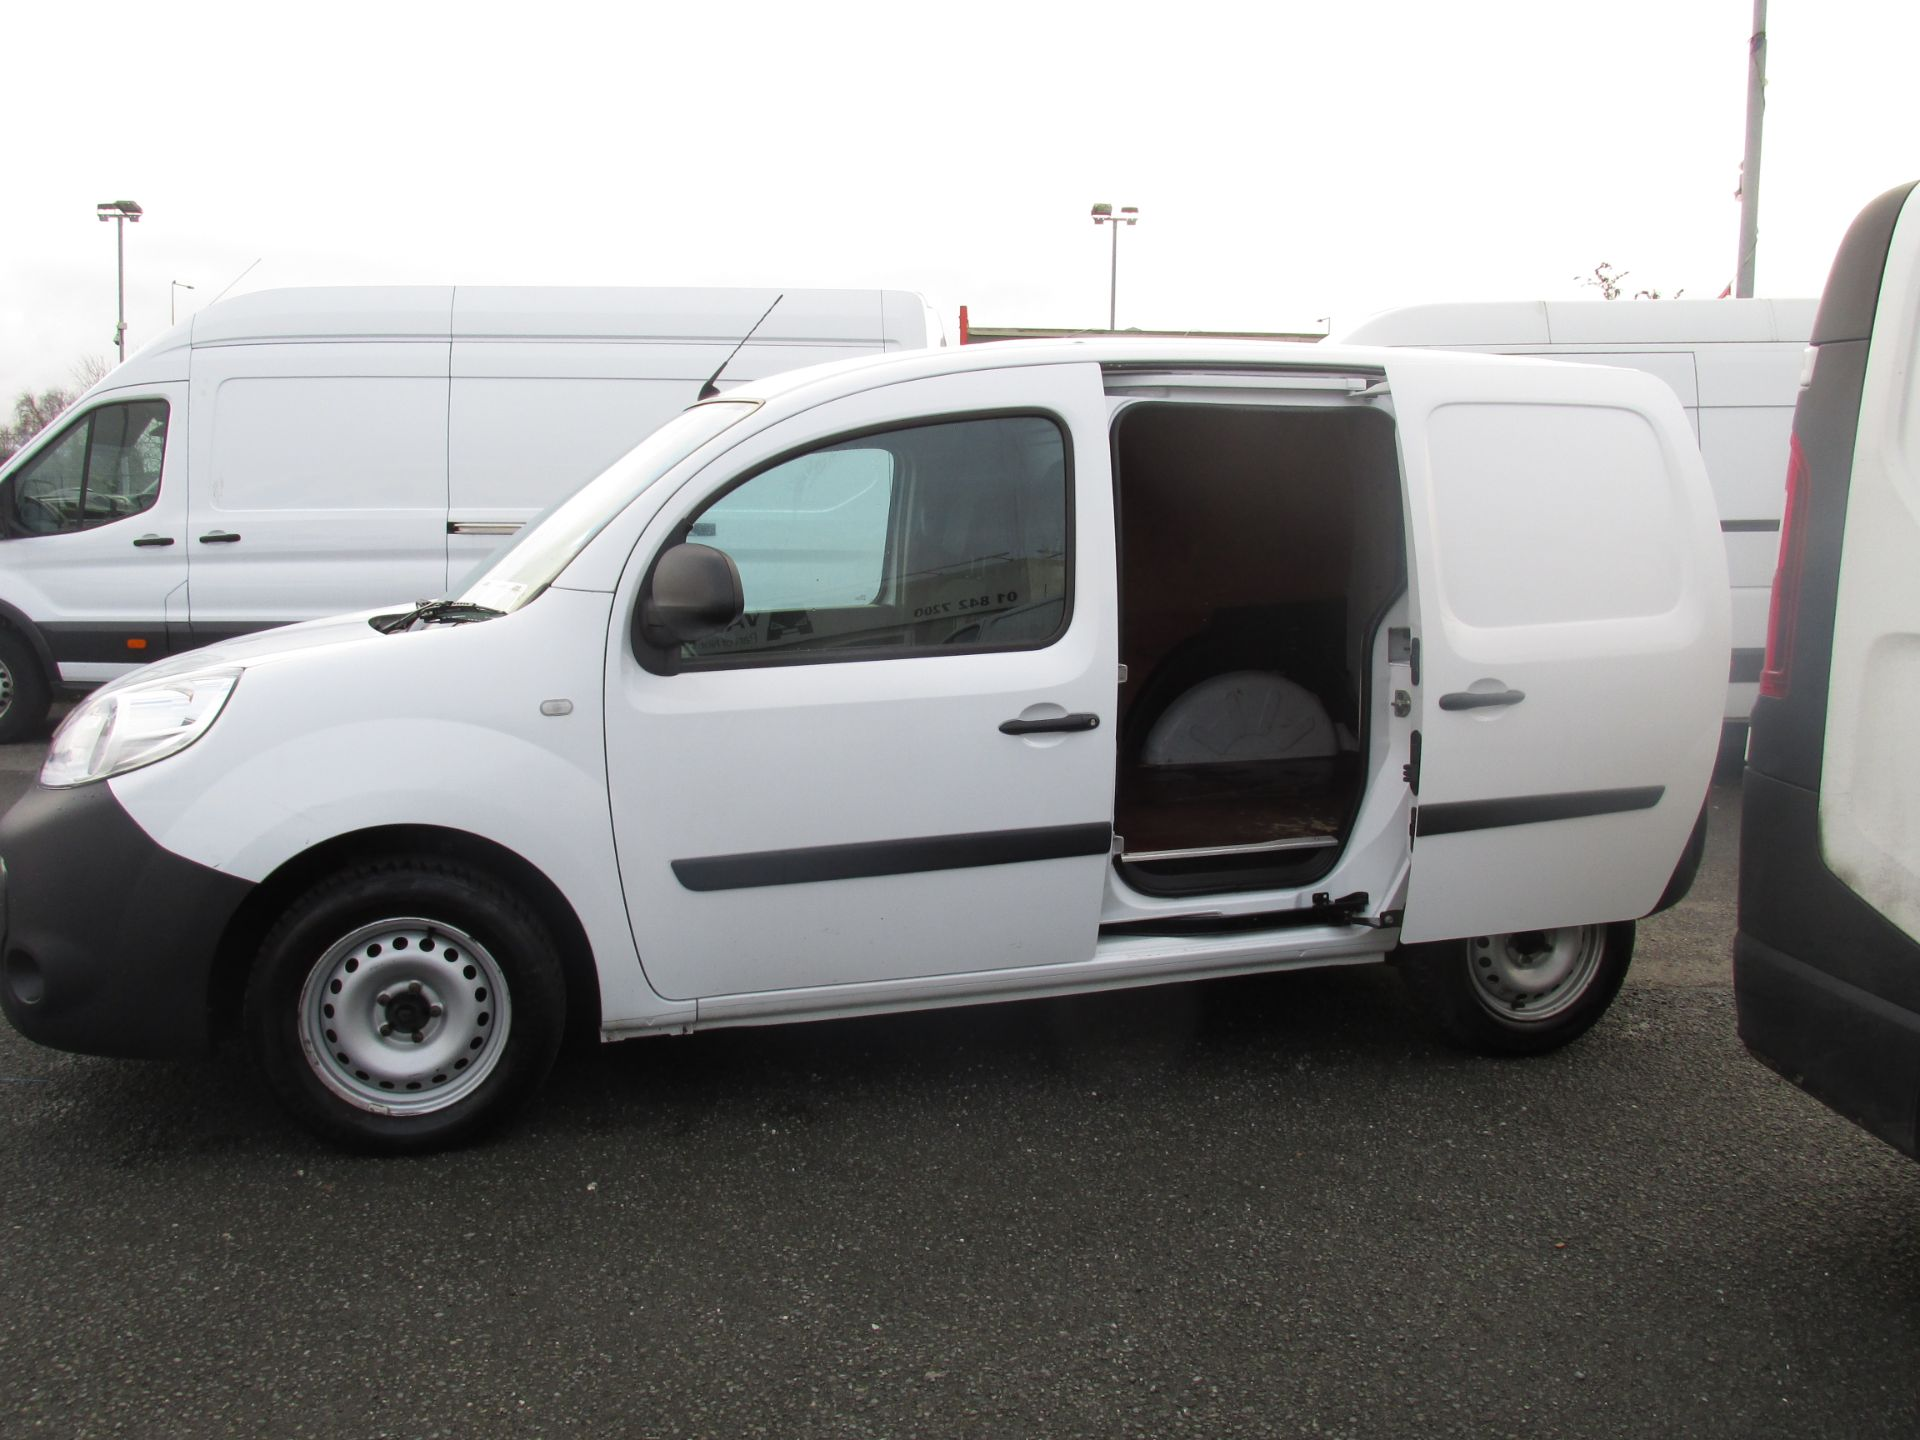 2016 Renault Kangoo ML19 Energy DCI 75 Business 2D - 100 VANS TO VIEW IN VM SANTRY DUBLIN - (162D21651) Image 10